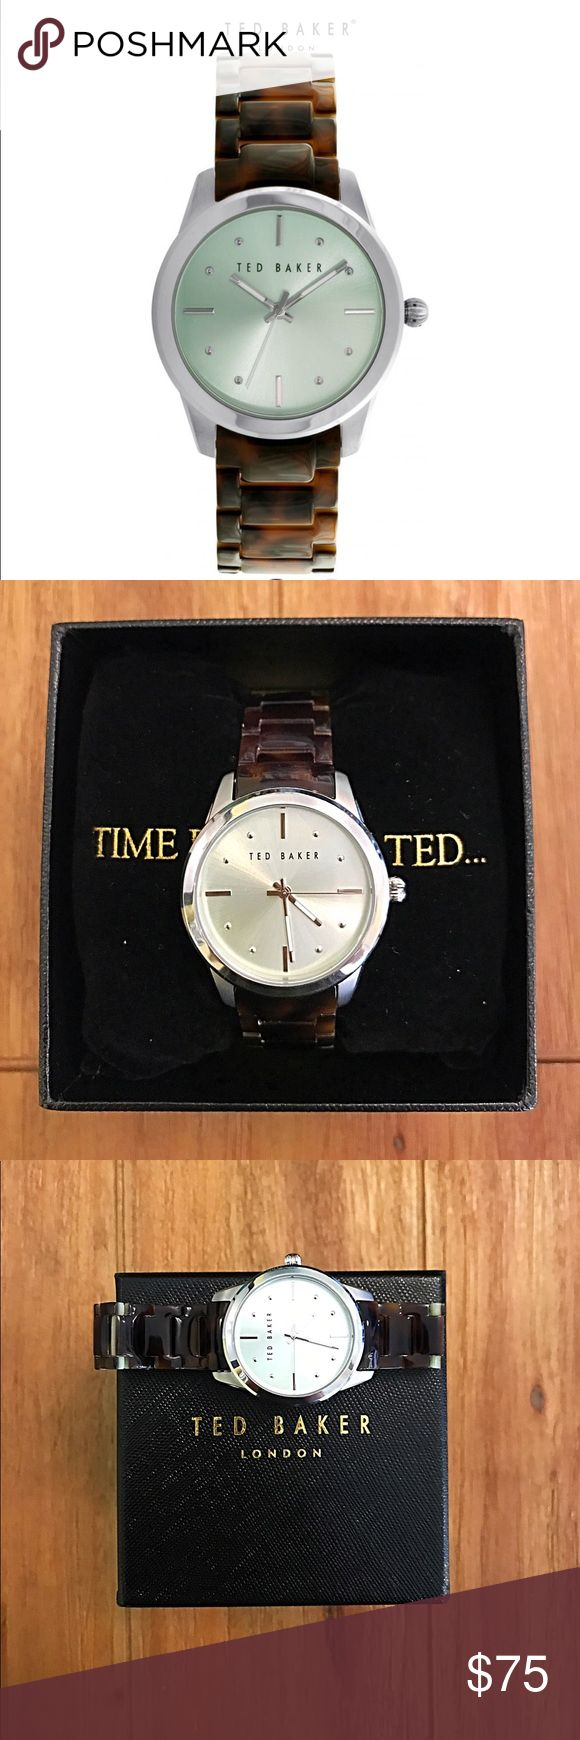 NWOT Ted Baker Tortoise and Silver Watch NWOT Ted Baker women's watch. It is silver, tortoise, and has a silver/blue face. It works great and has been worn once. Comes in original box and with tags attached to the underneath of the face. Ted Baker London Accessories Watches